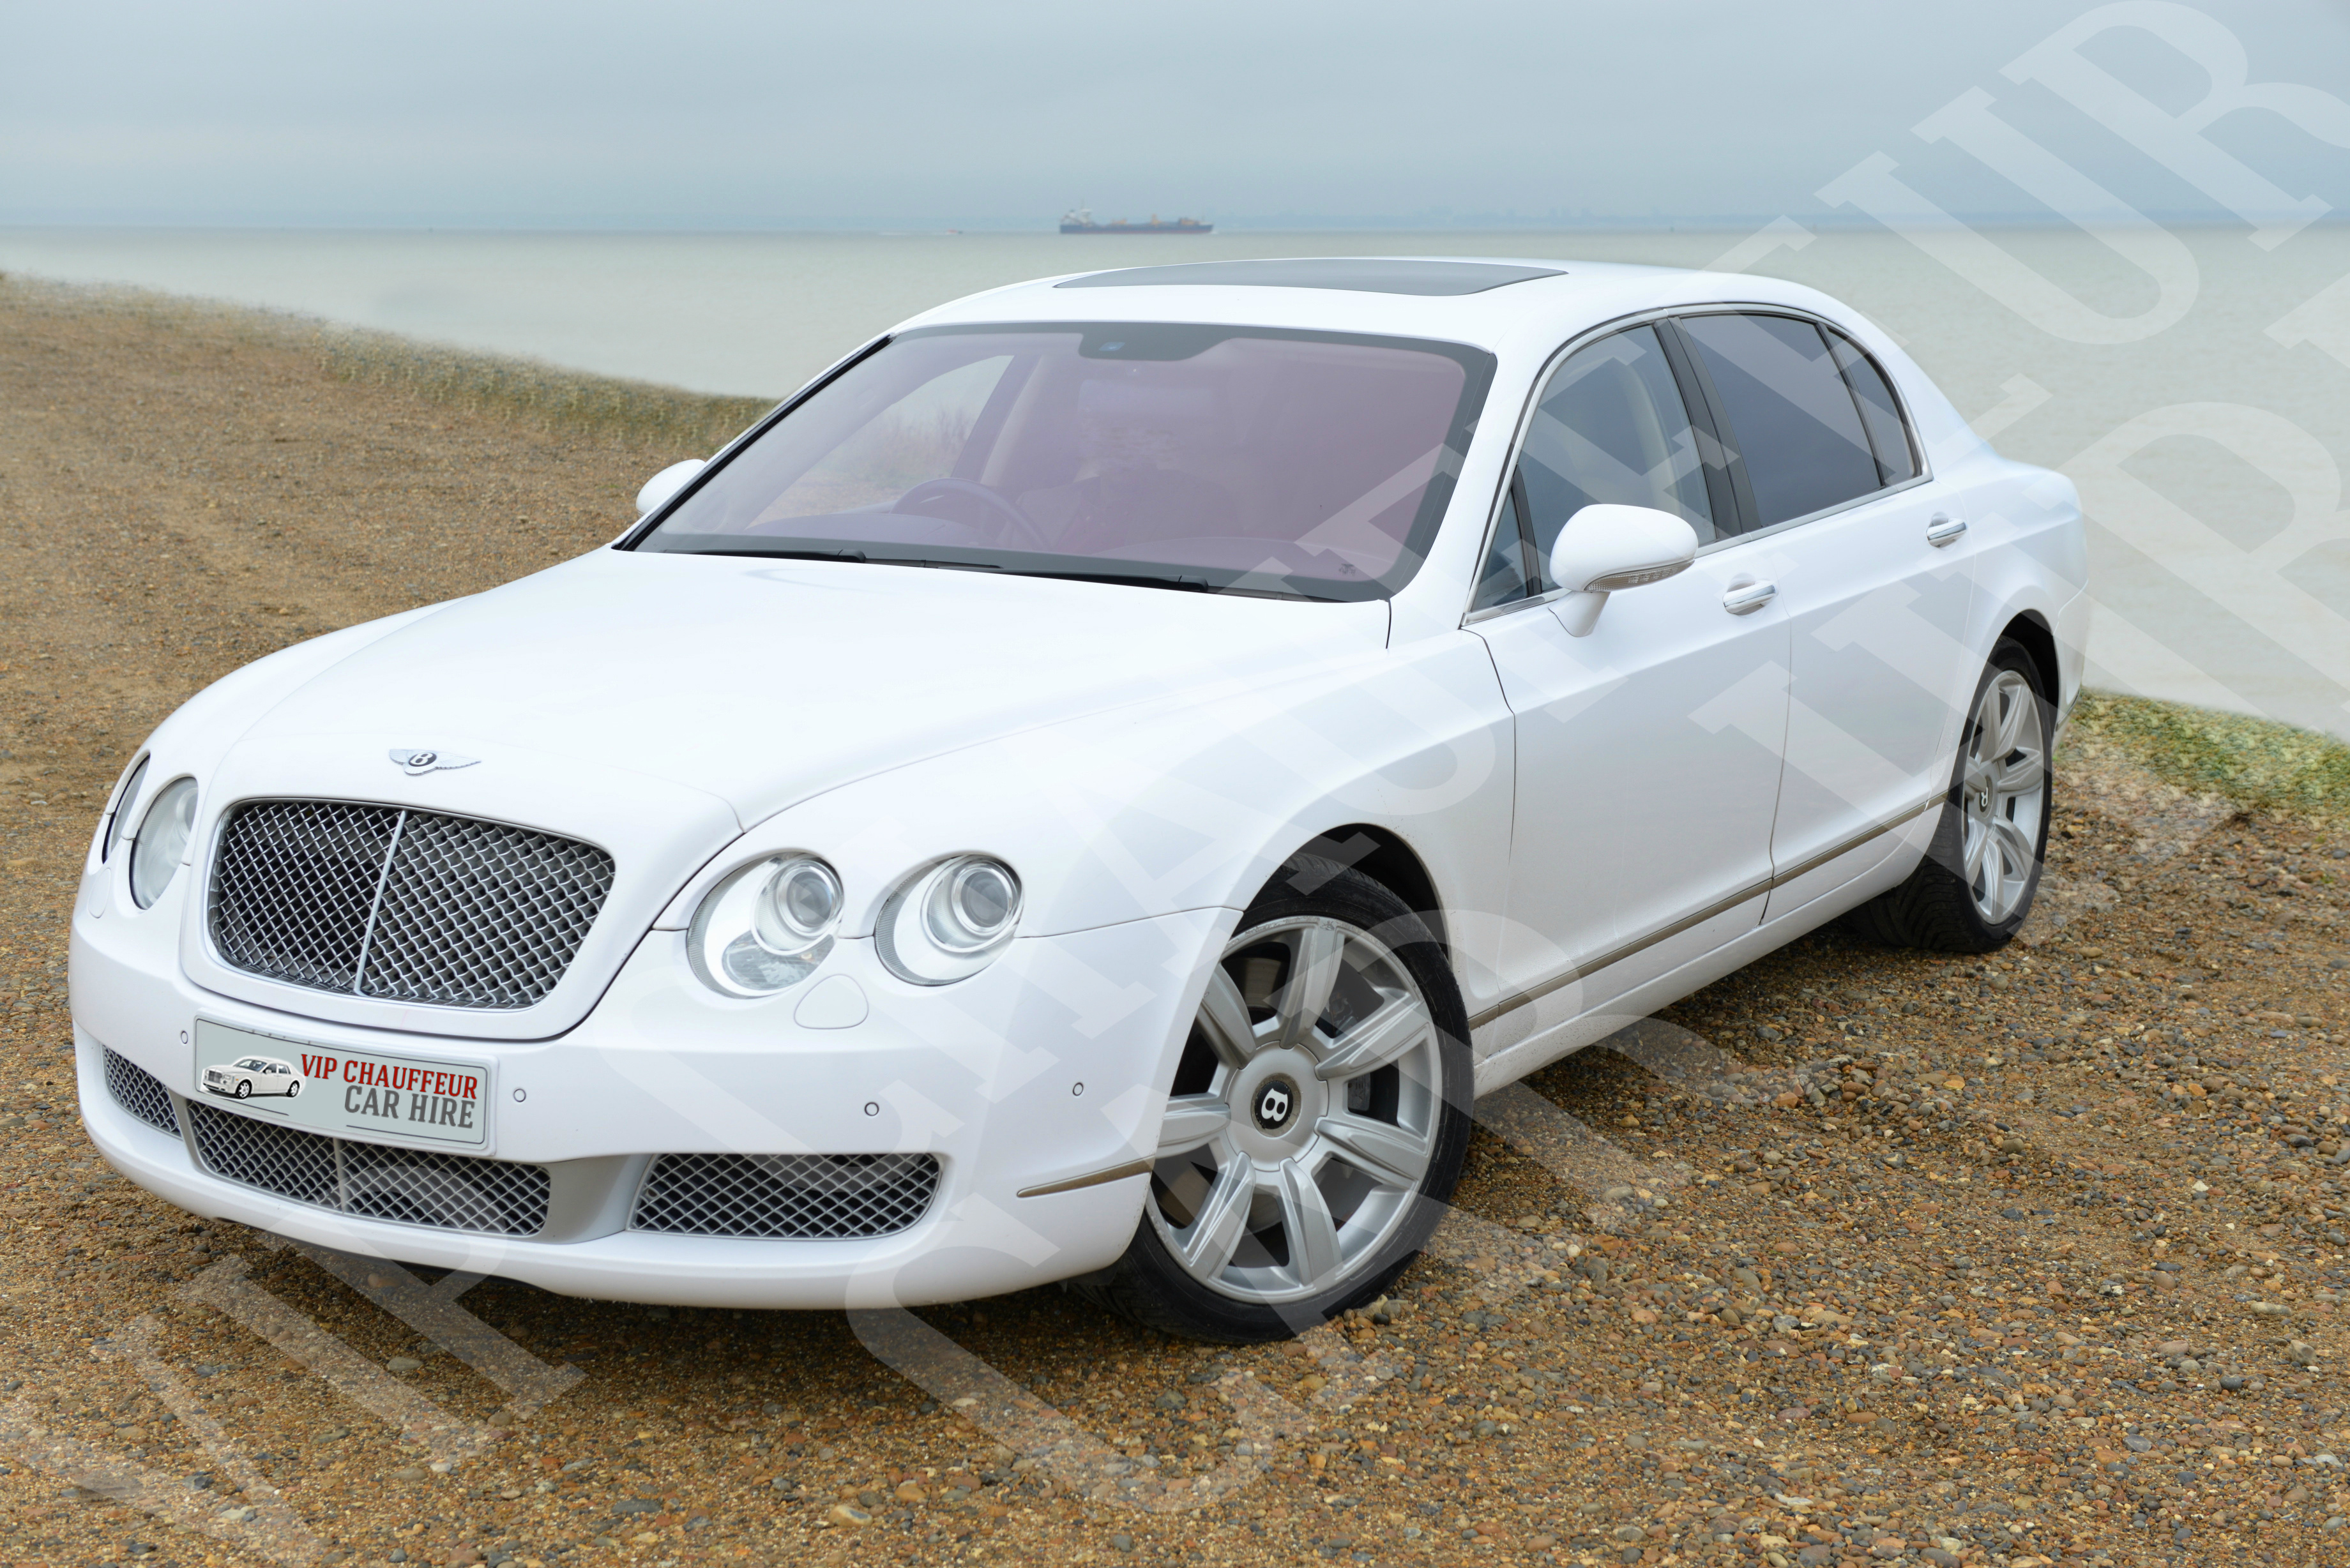 company bentley industry good woah to unlimited an shows there marketing rental you do is ways a advertising own of can want your car different are attend revs exotic way